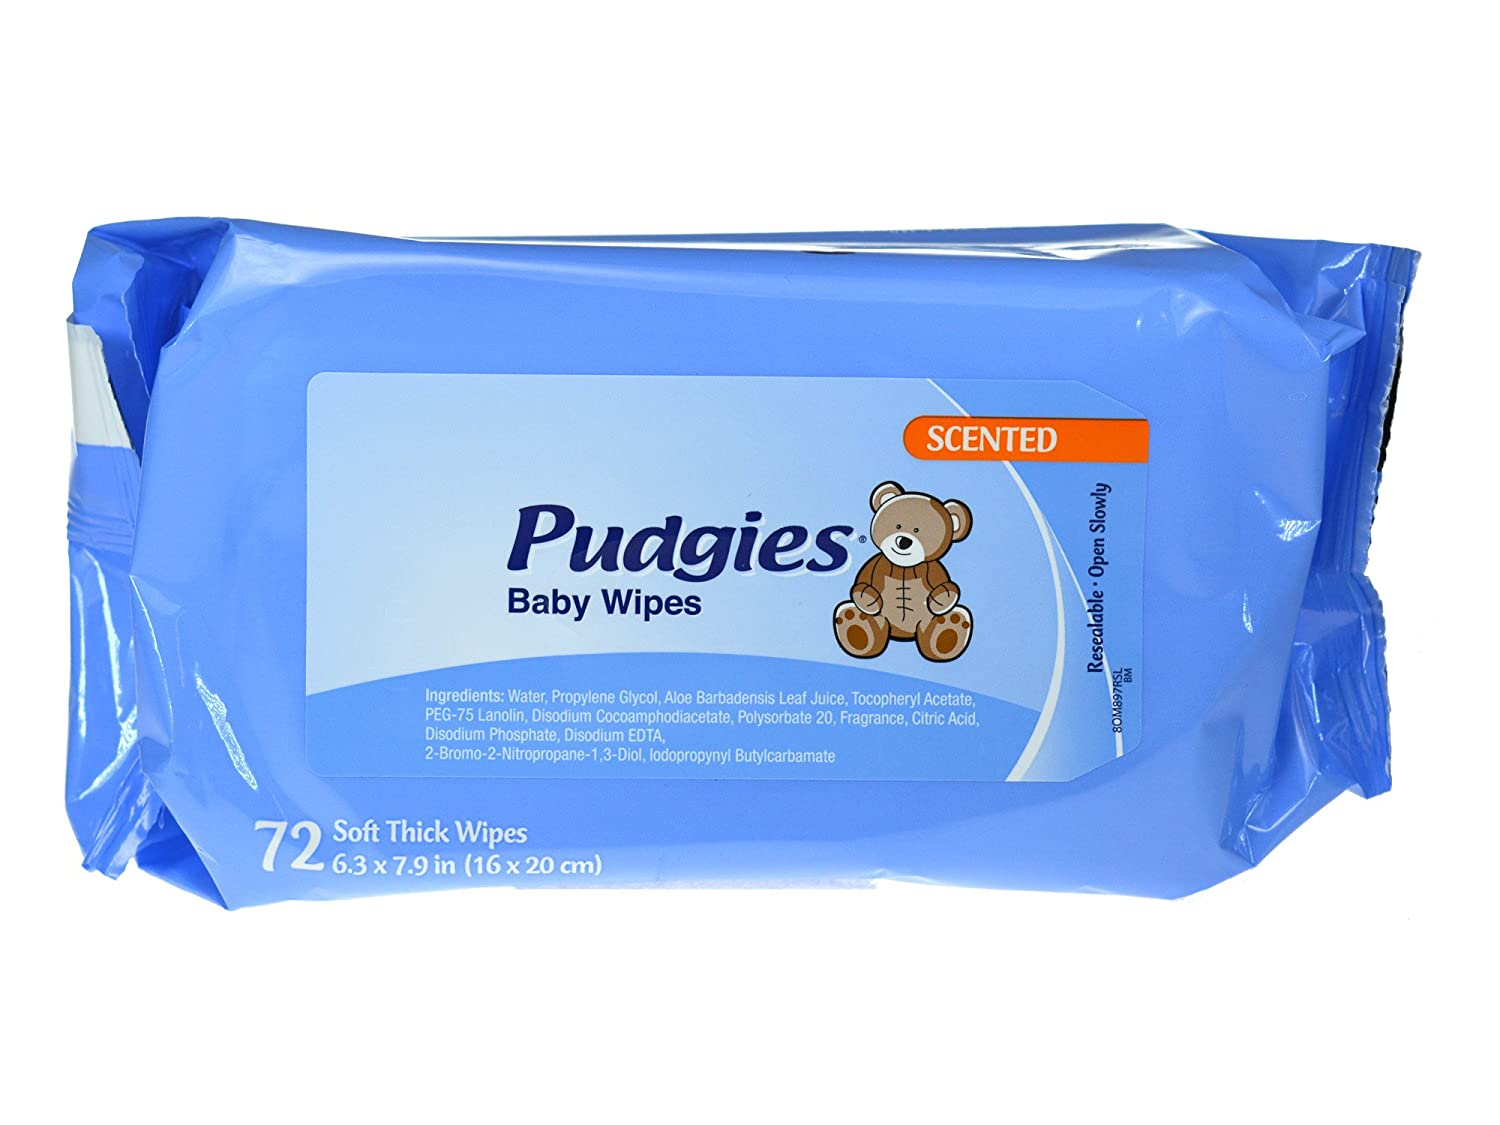 Amazon.com : NICA630FW - Nice-pak Unscented Pudgies Baby Wipes : Industrial Products : Baby